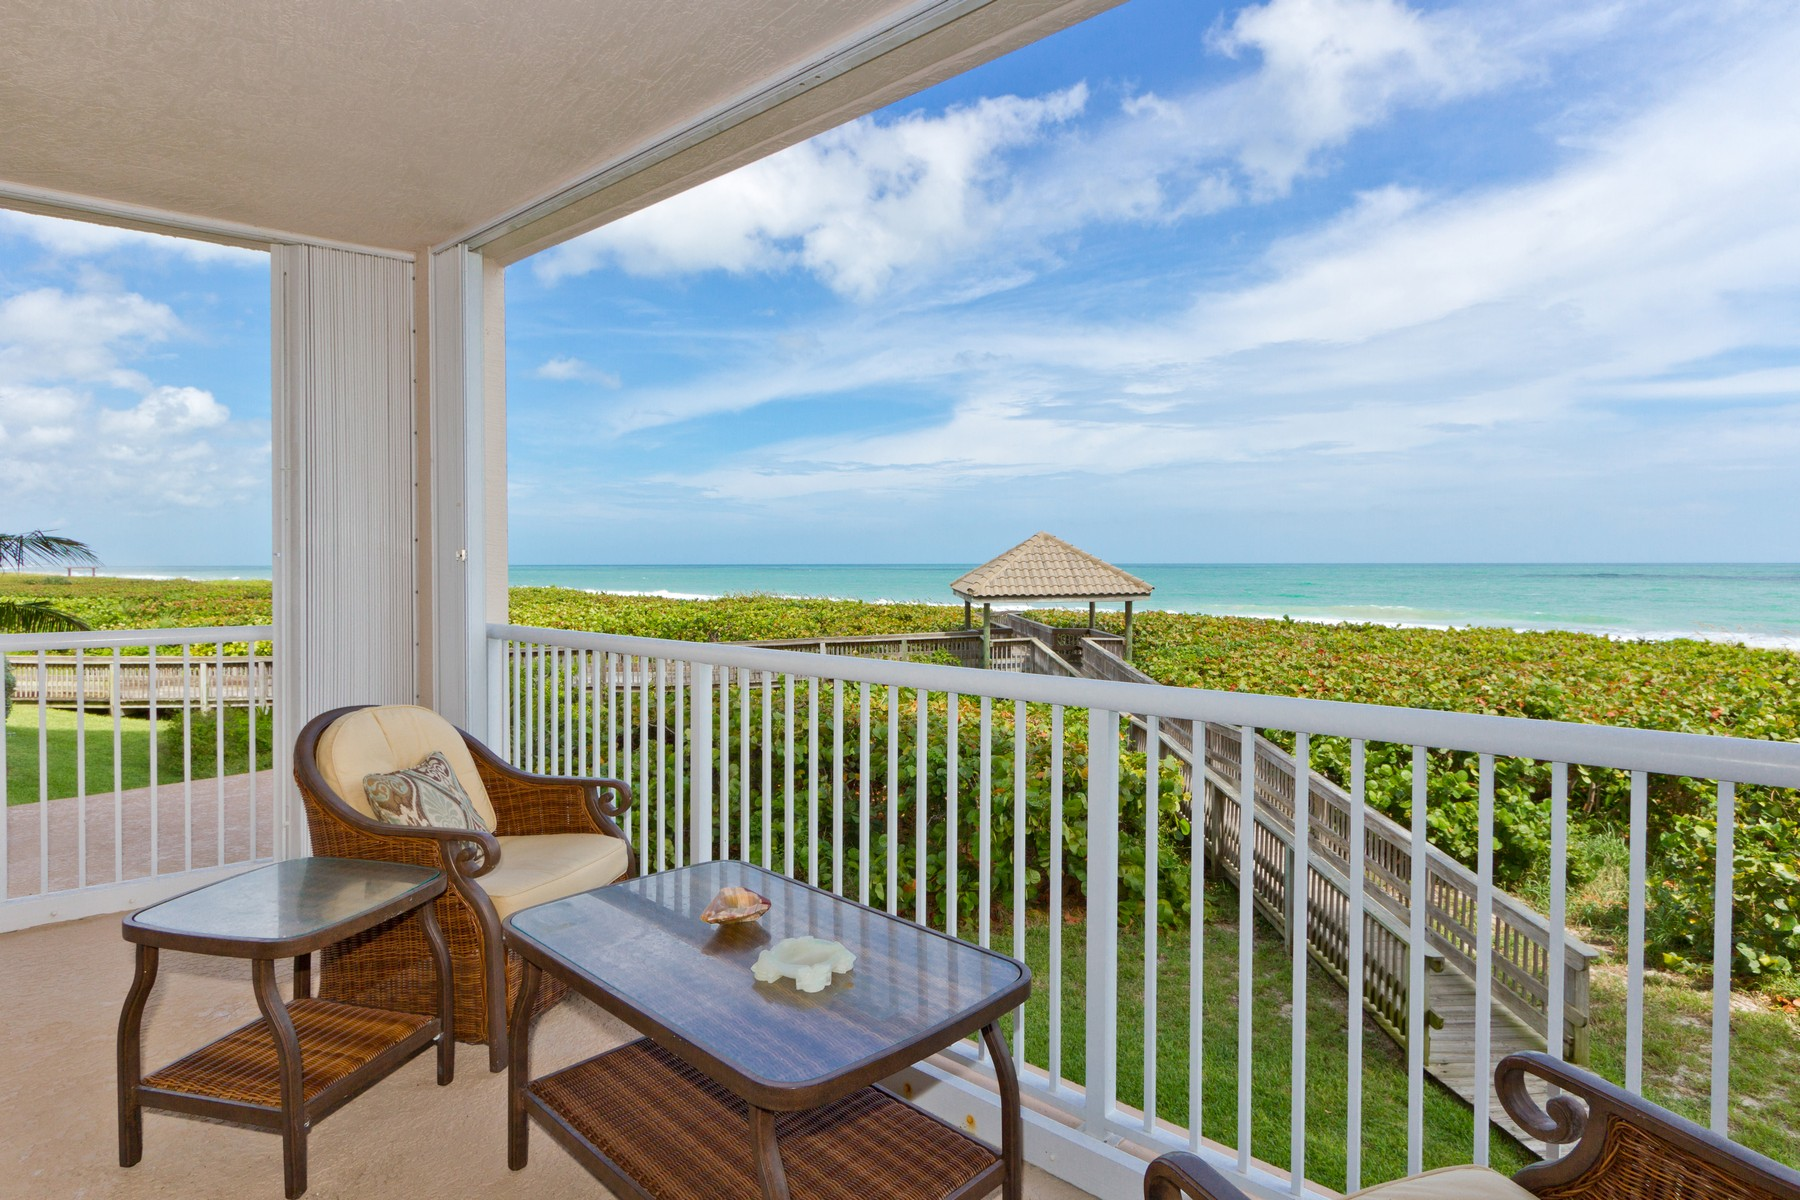 Appartement voor Verkoop op Breathe in Sweeping Turquoise Ocean Views from the Wrap-Around Balcony 4160 N Highway A1A #201A Hutchinson Island, Florida 34949 Verenigde Staten